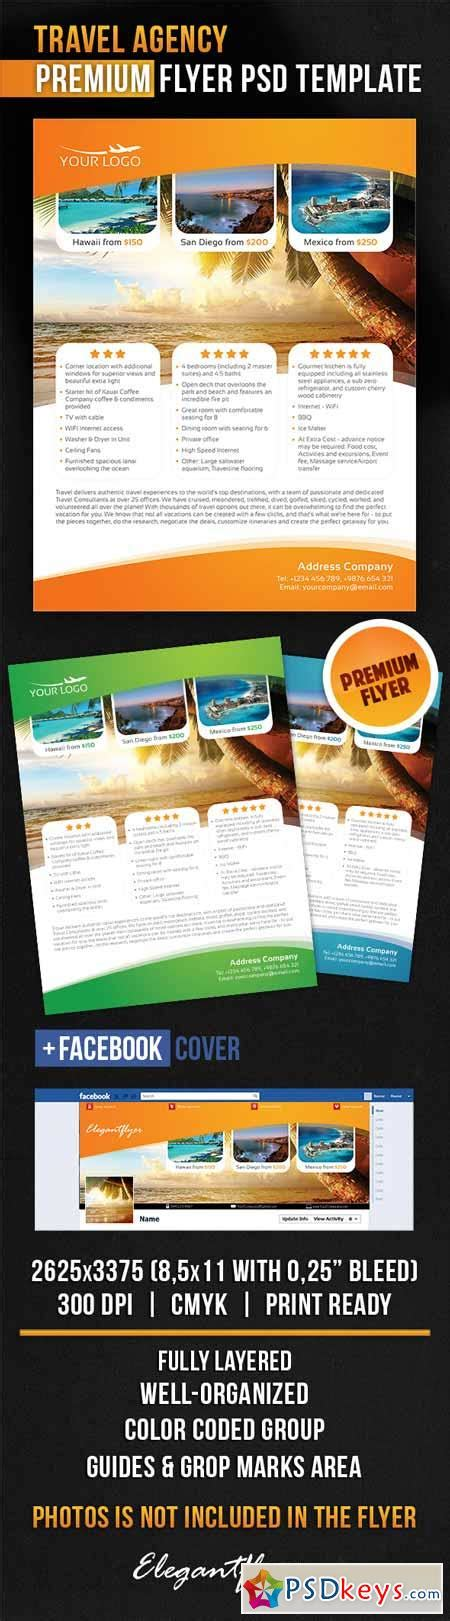 travel agency flyer psd template facebook cover 187 free